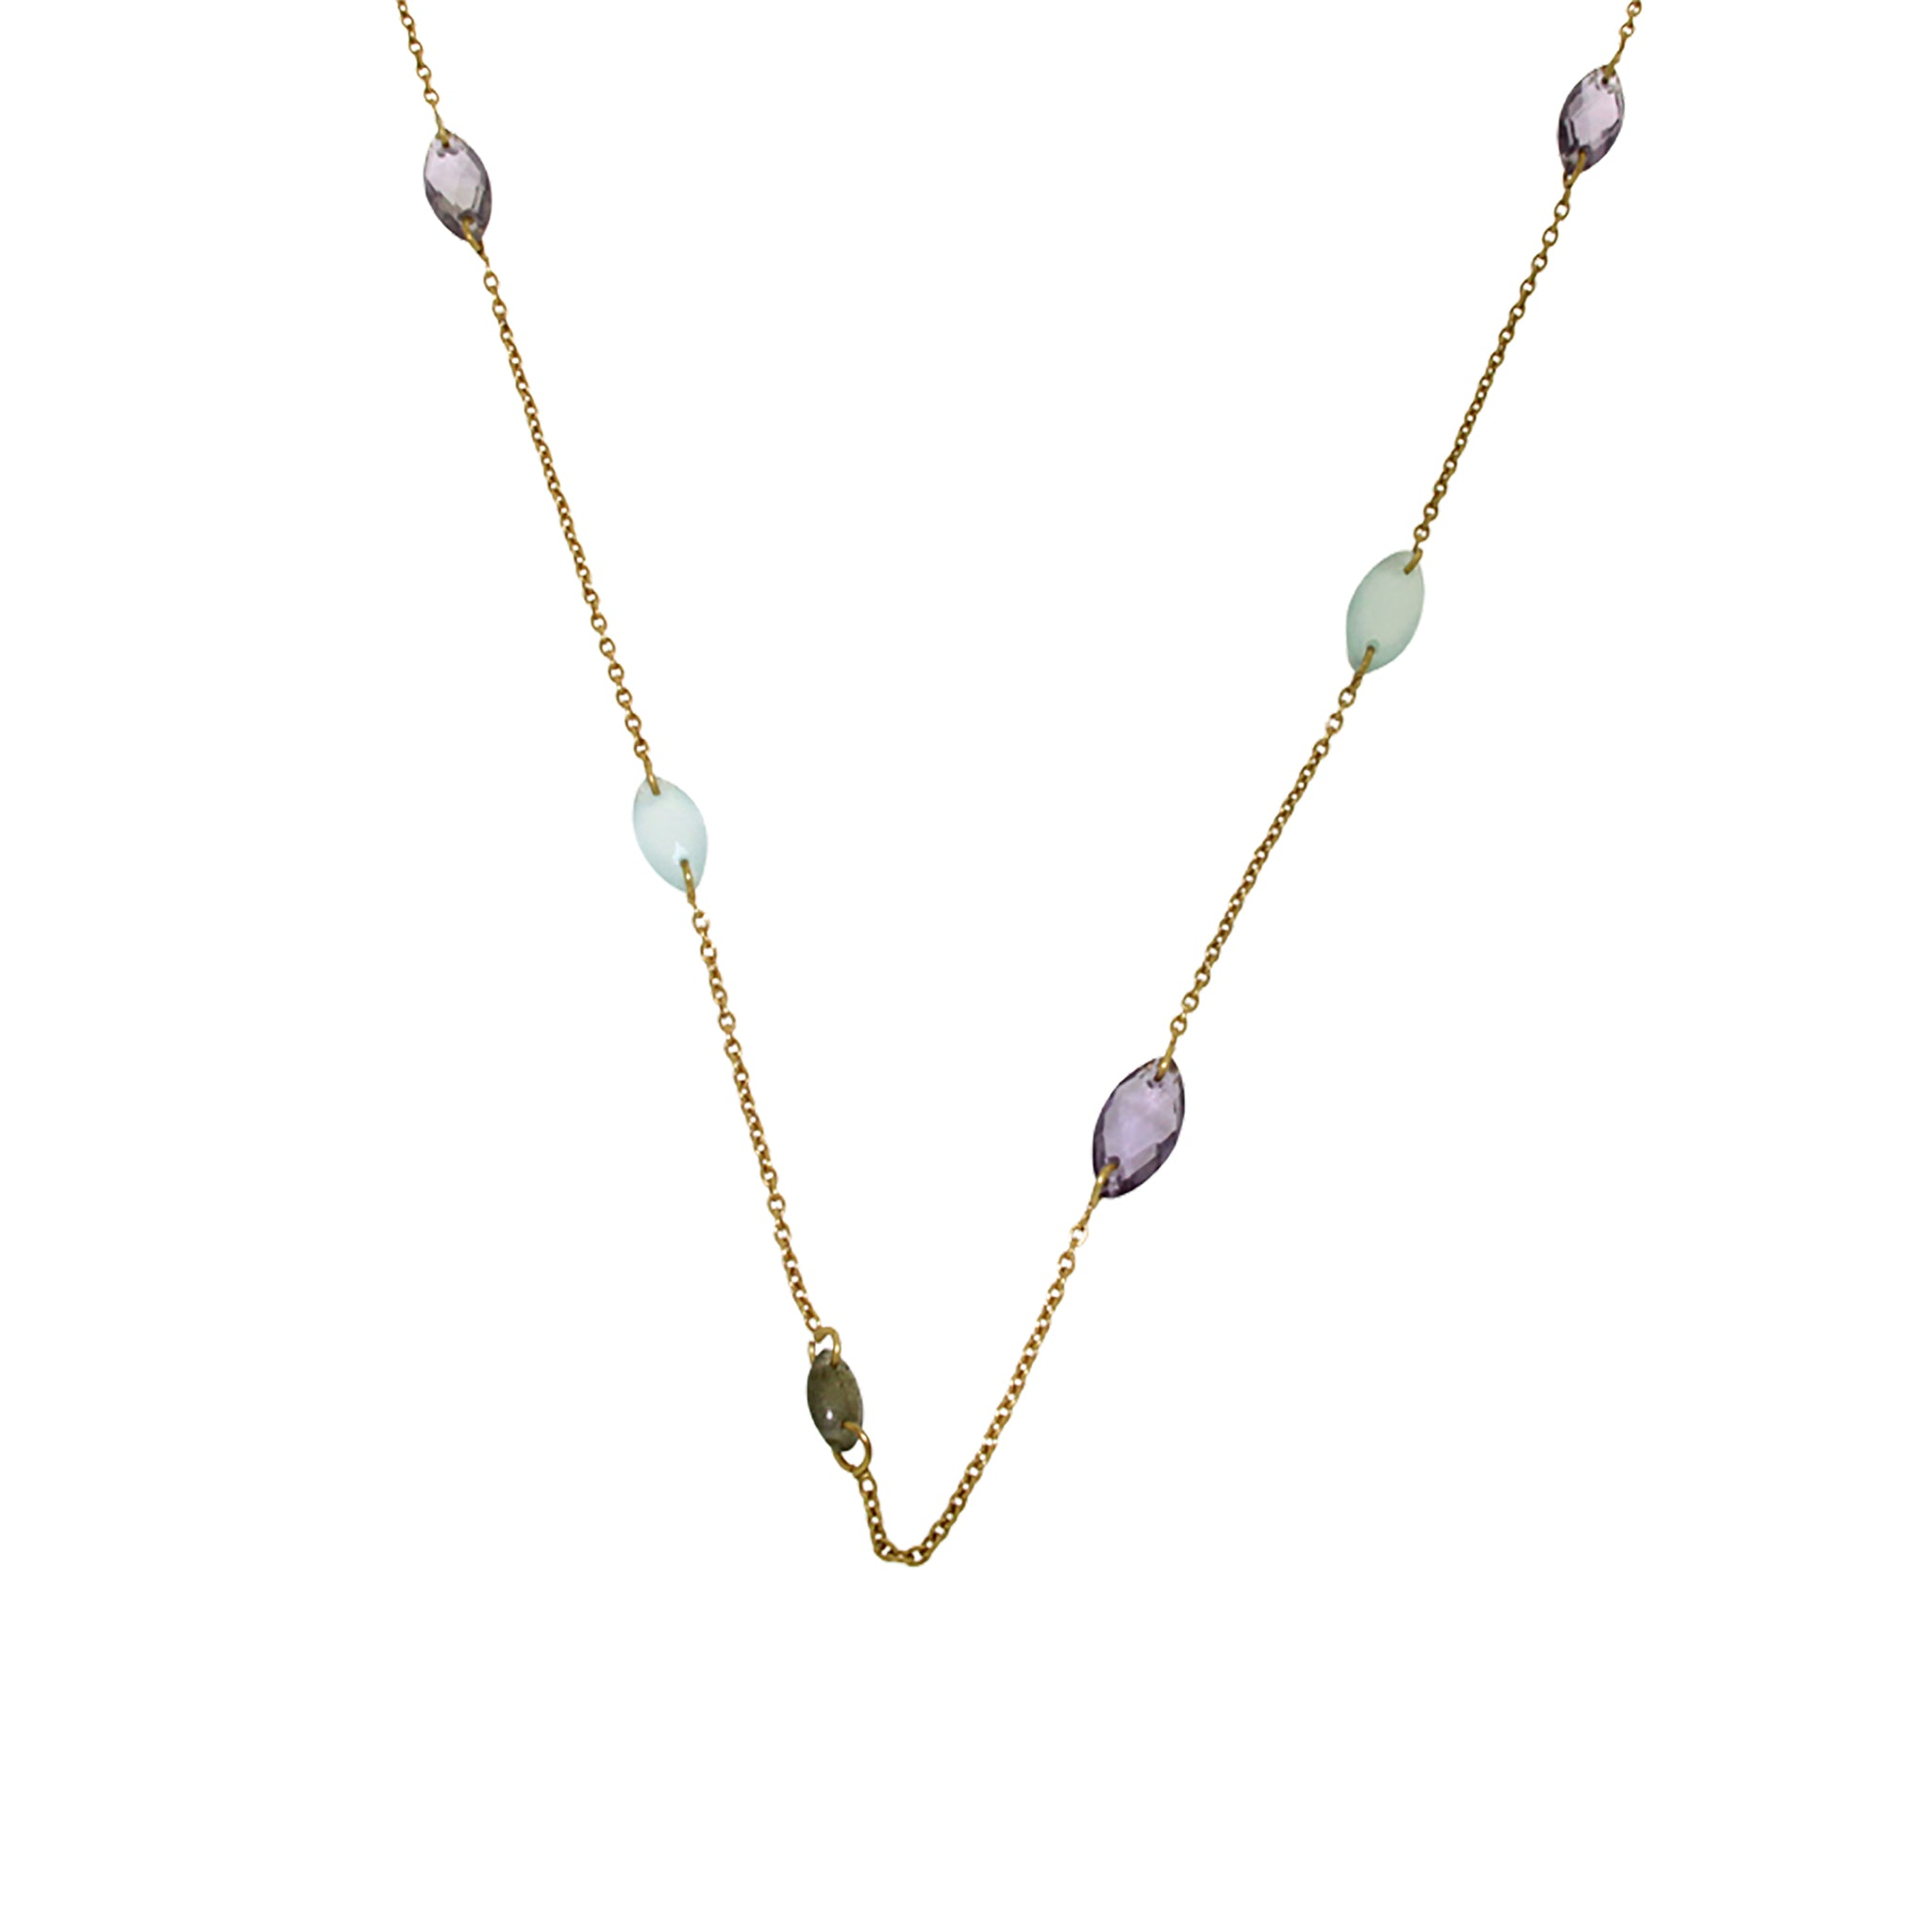 of hammered jewellery products precious stones on necklace discs stone semi necklaces strand gold collections semiprecious